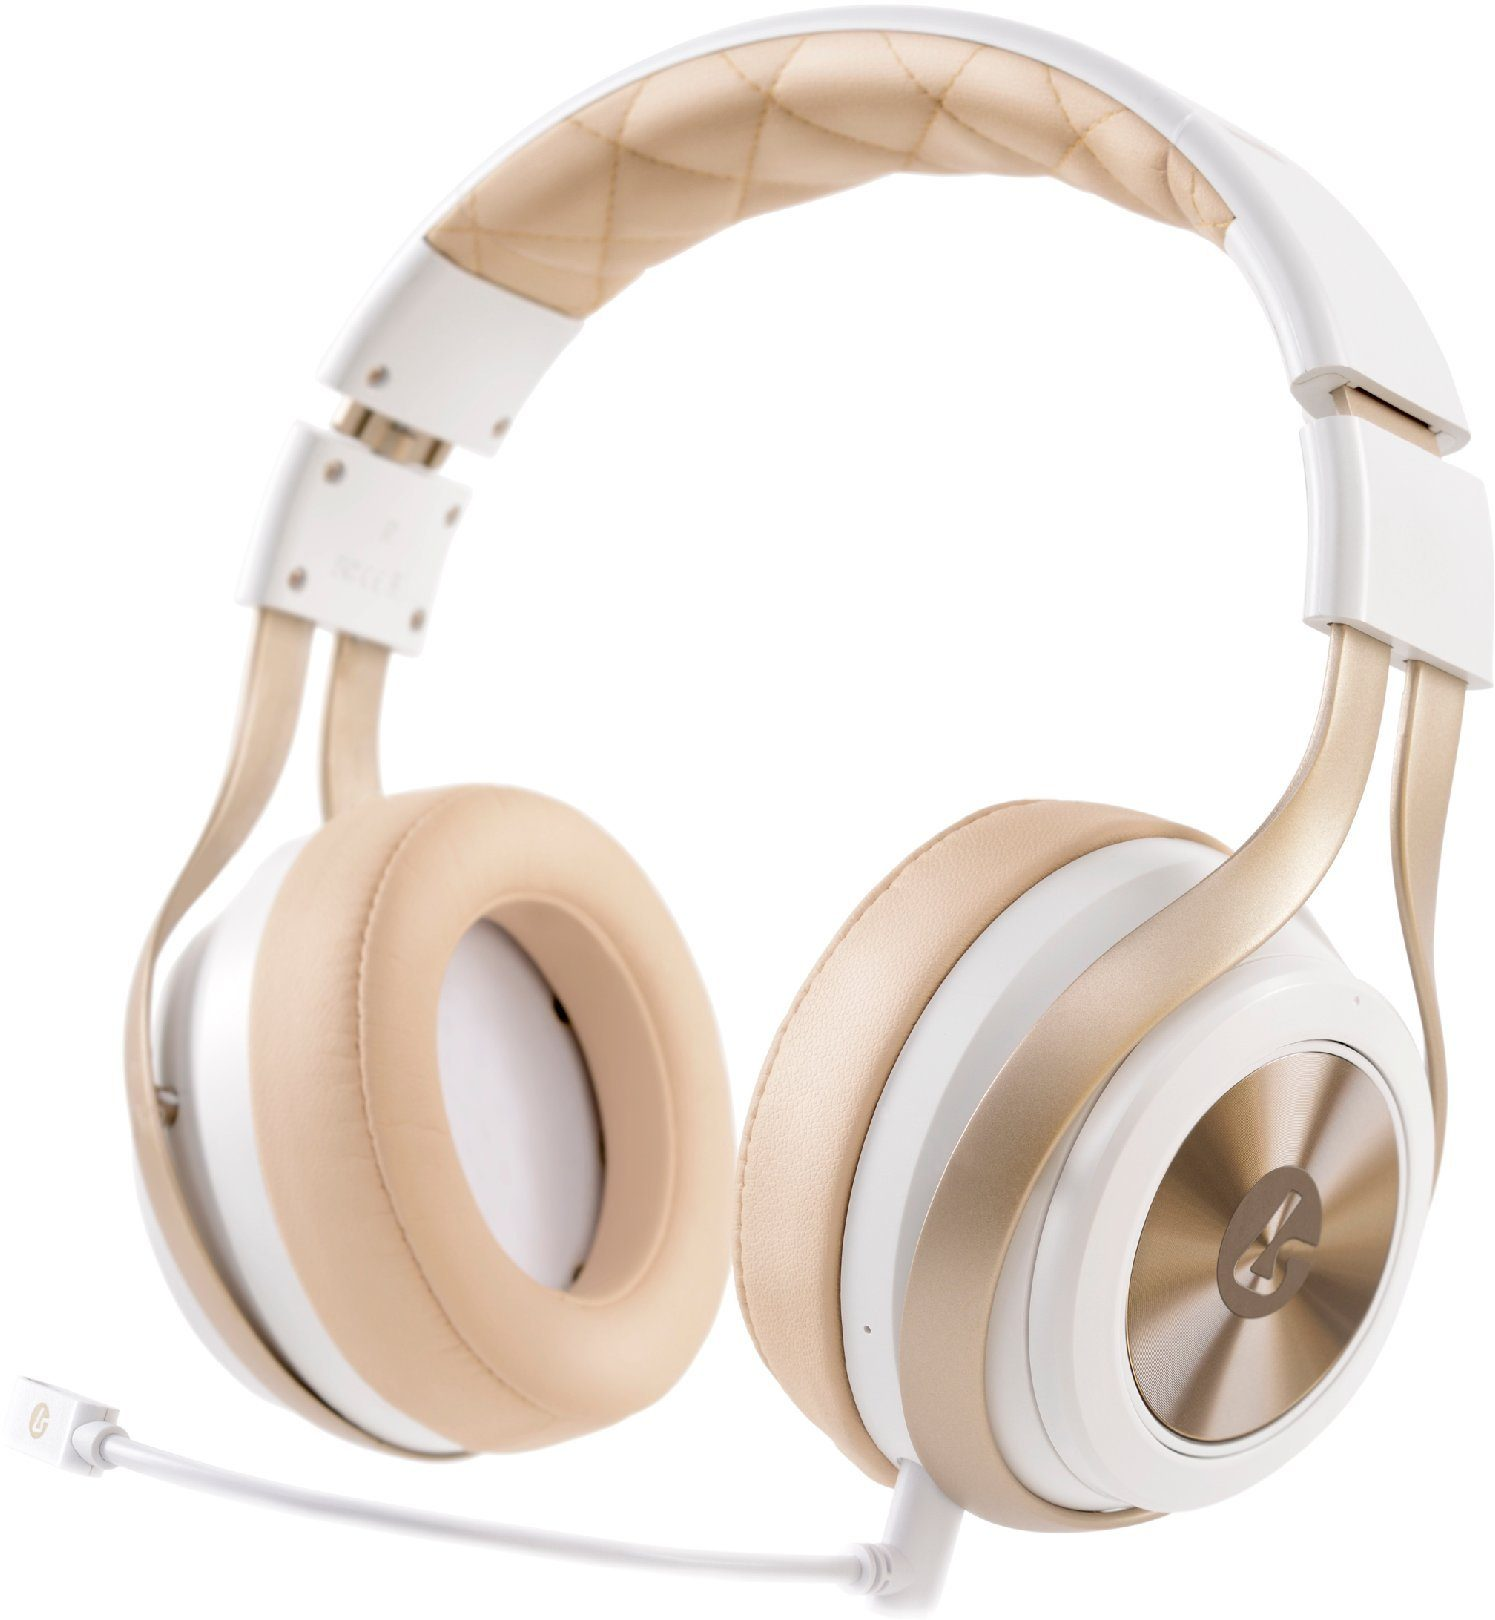 Lucid Sound LS30 Wireless Gaming Headset in Weiss »PS4 PS3 XBox One X360 PC Tablet/Smartphone«